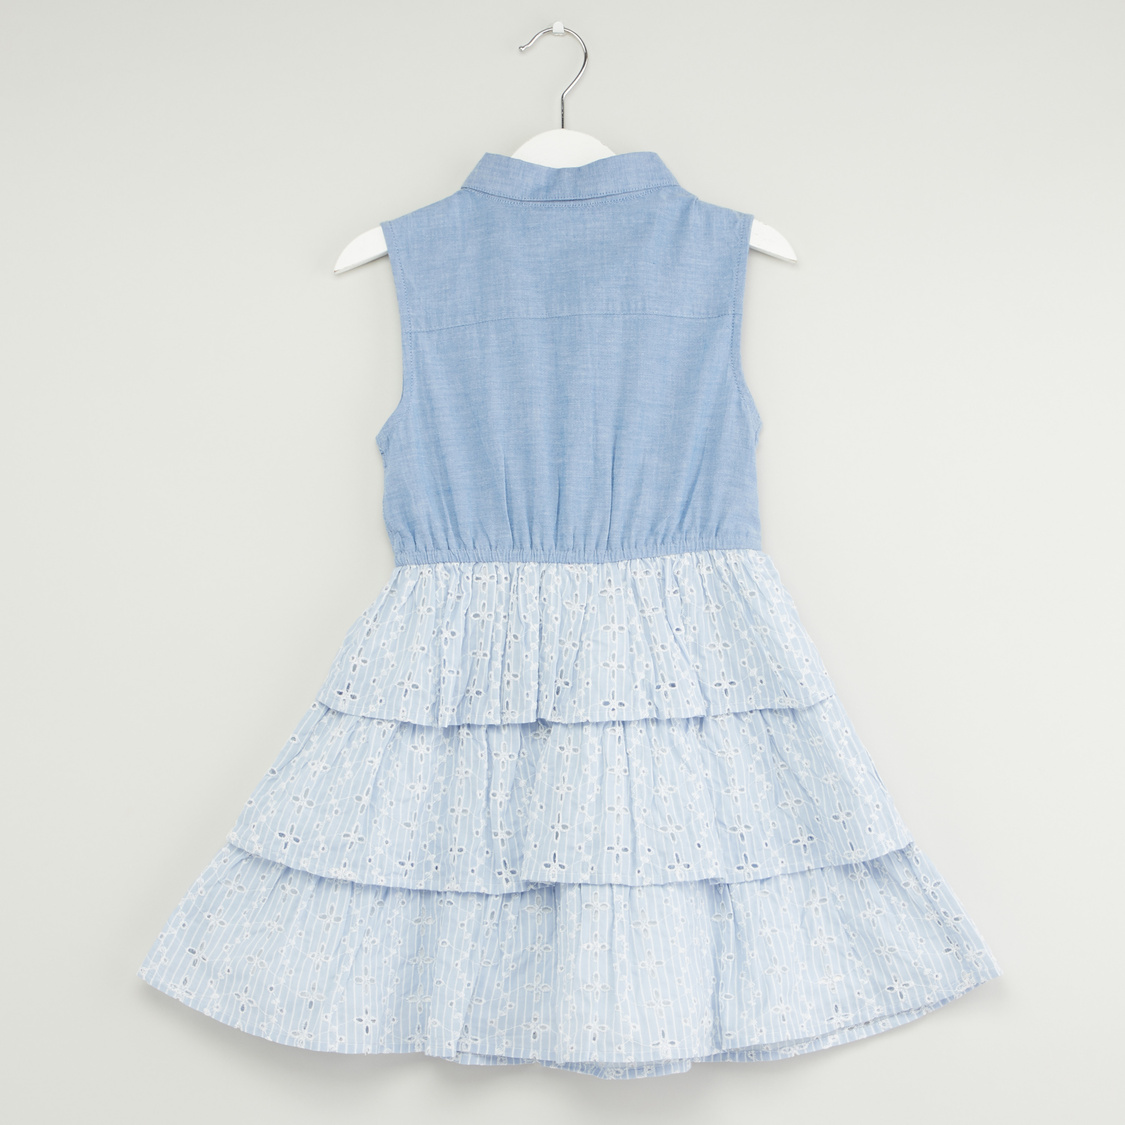 Schiffli Detail Sleeveless Dress with Spread Collar and Front Knot